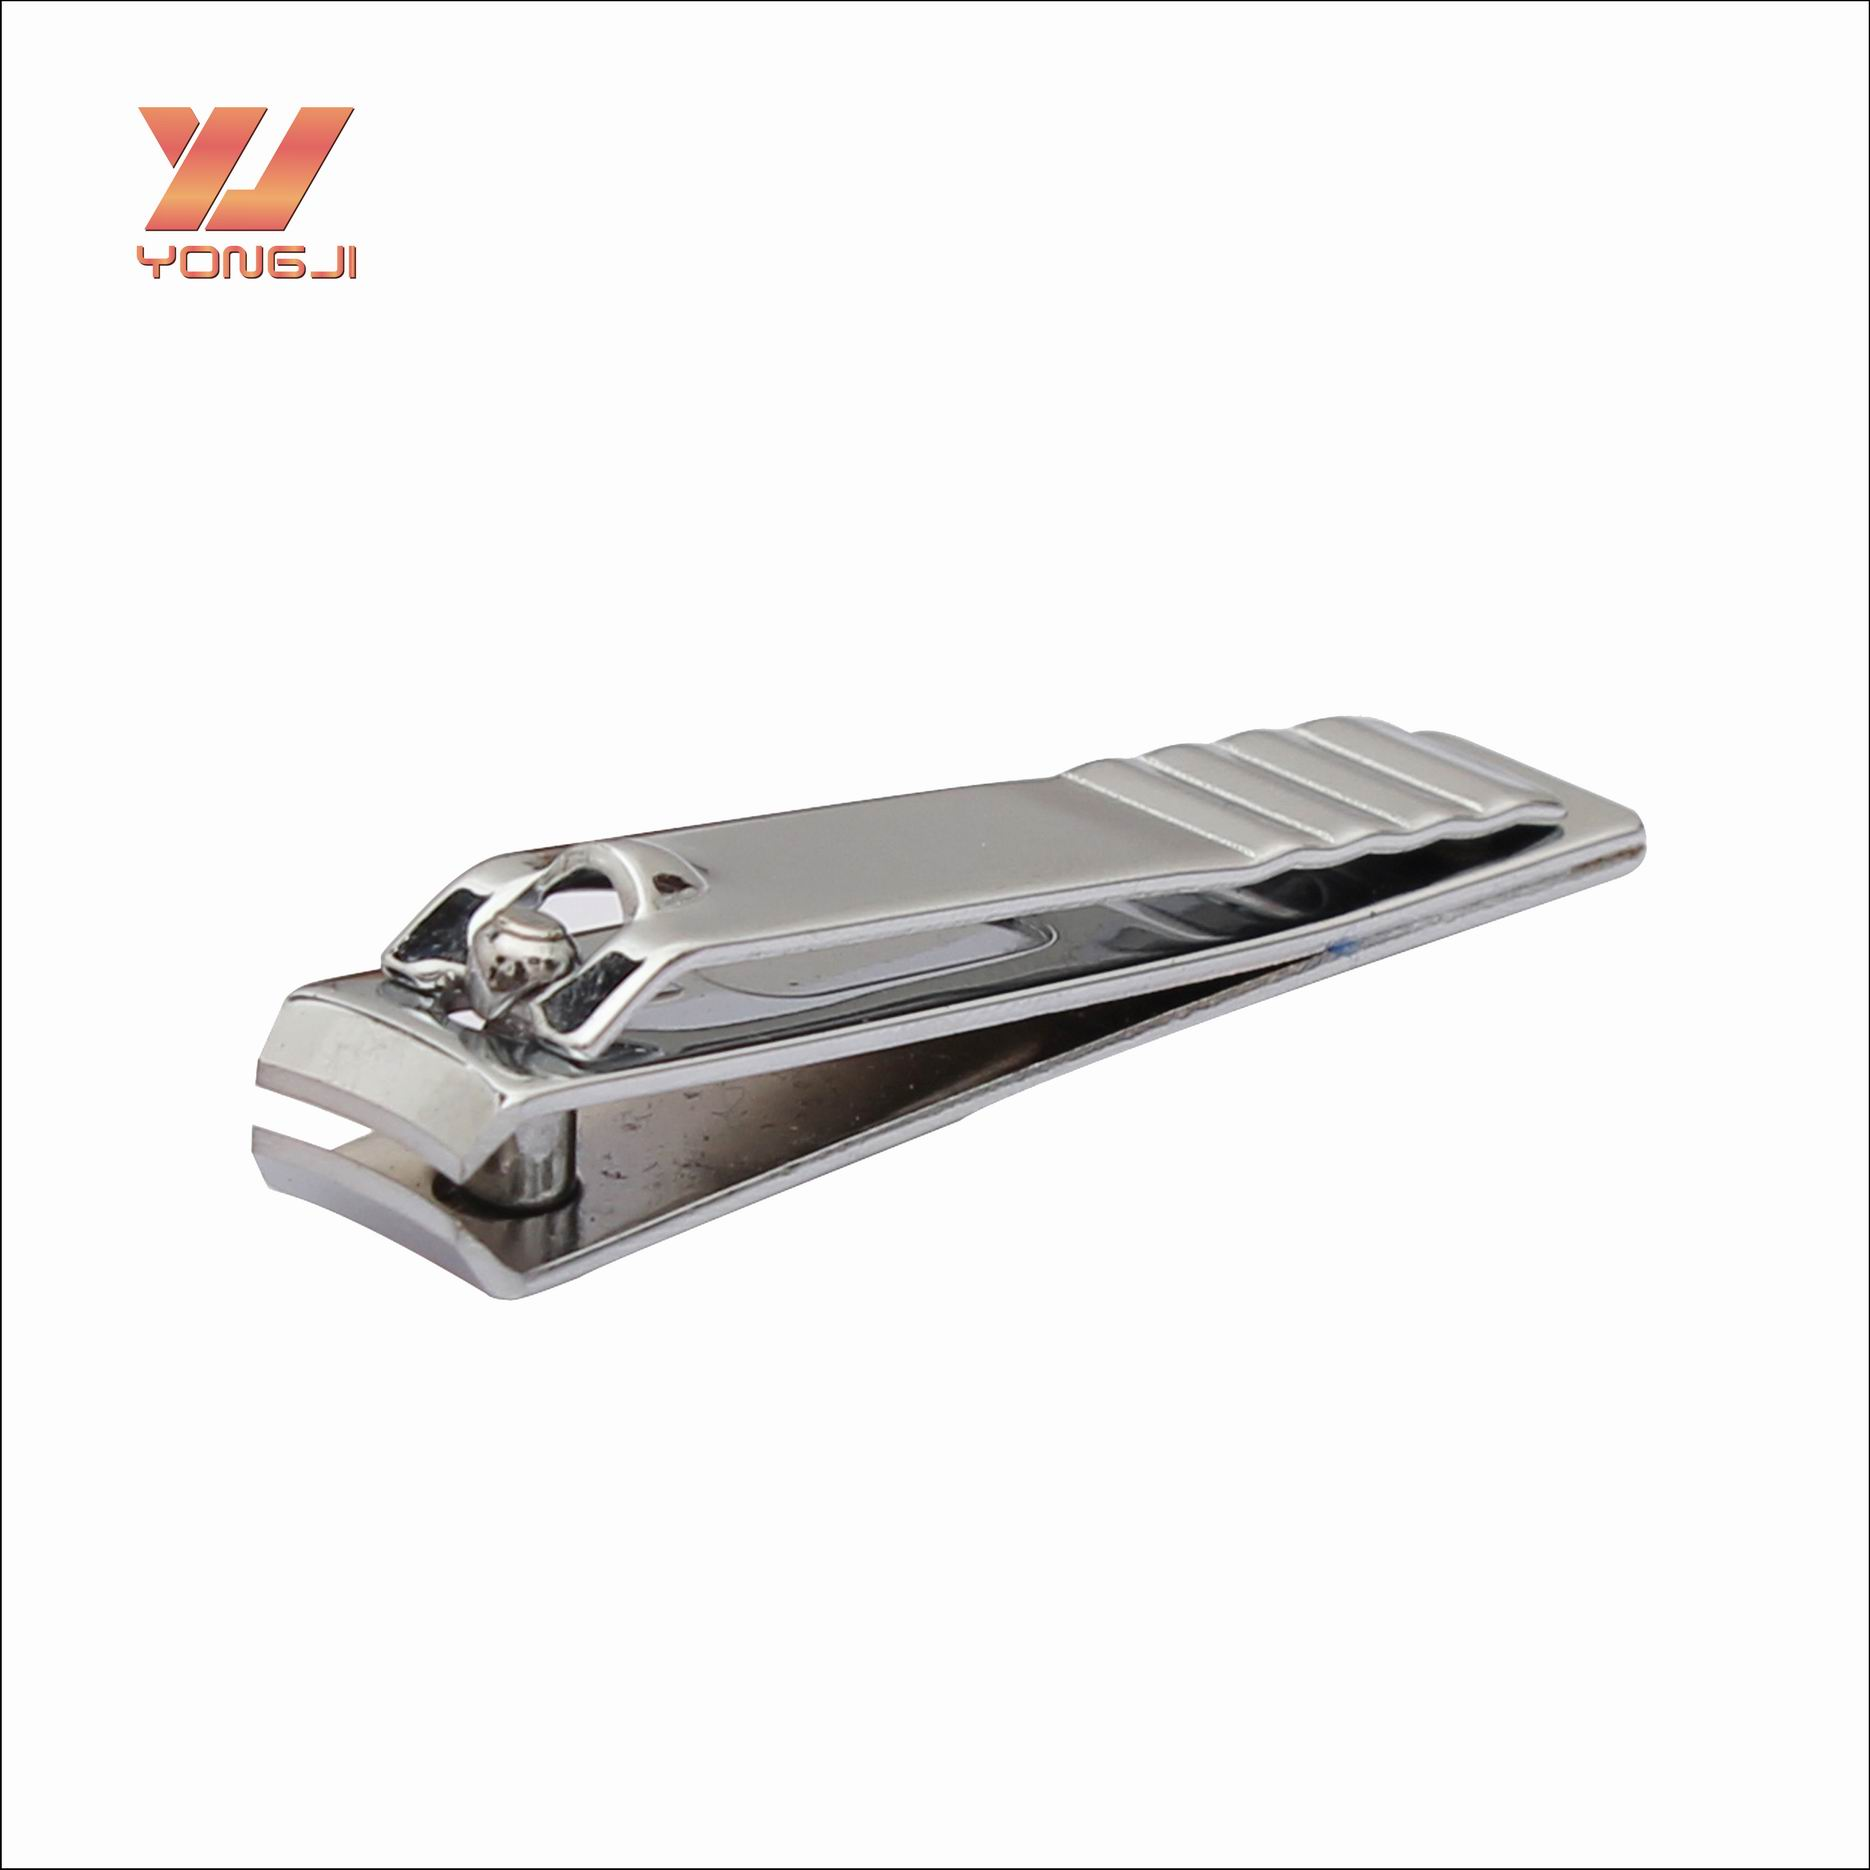 Hot Nail Clipper Wholesale, Hot Nail Clipper Wholesale Suppliers and ...